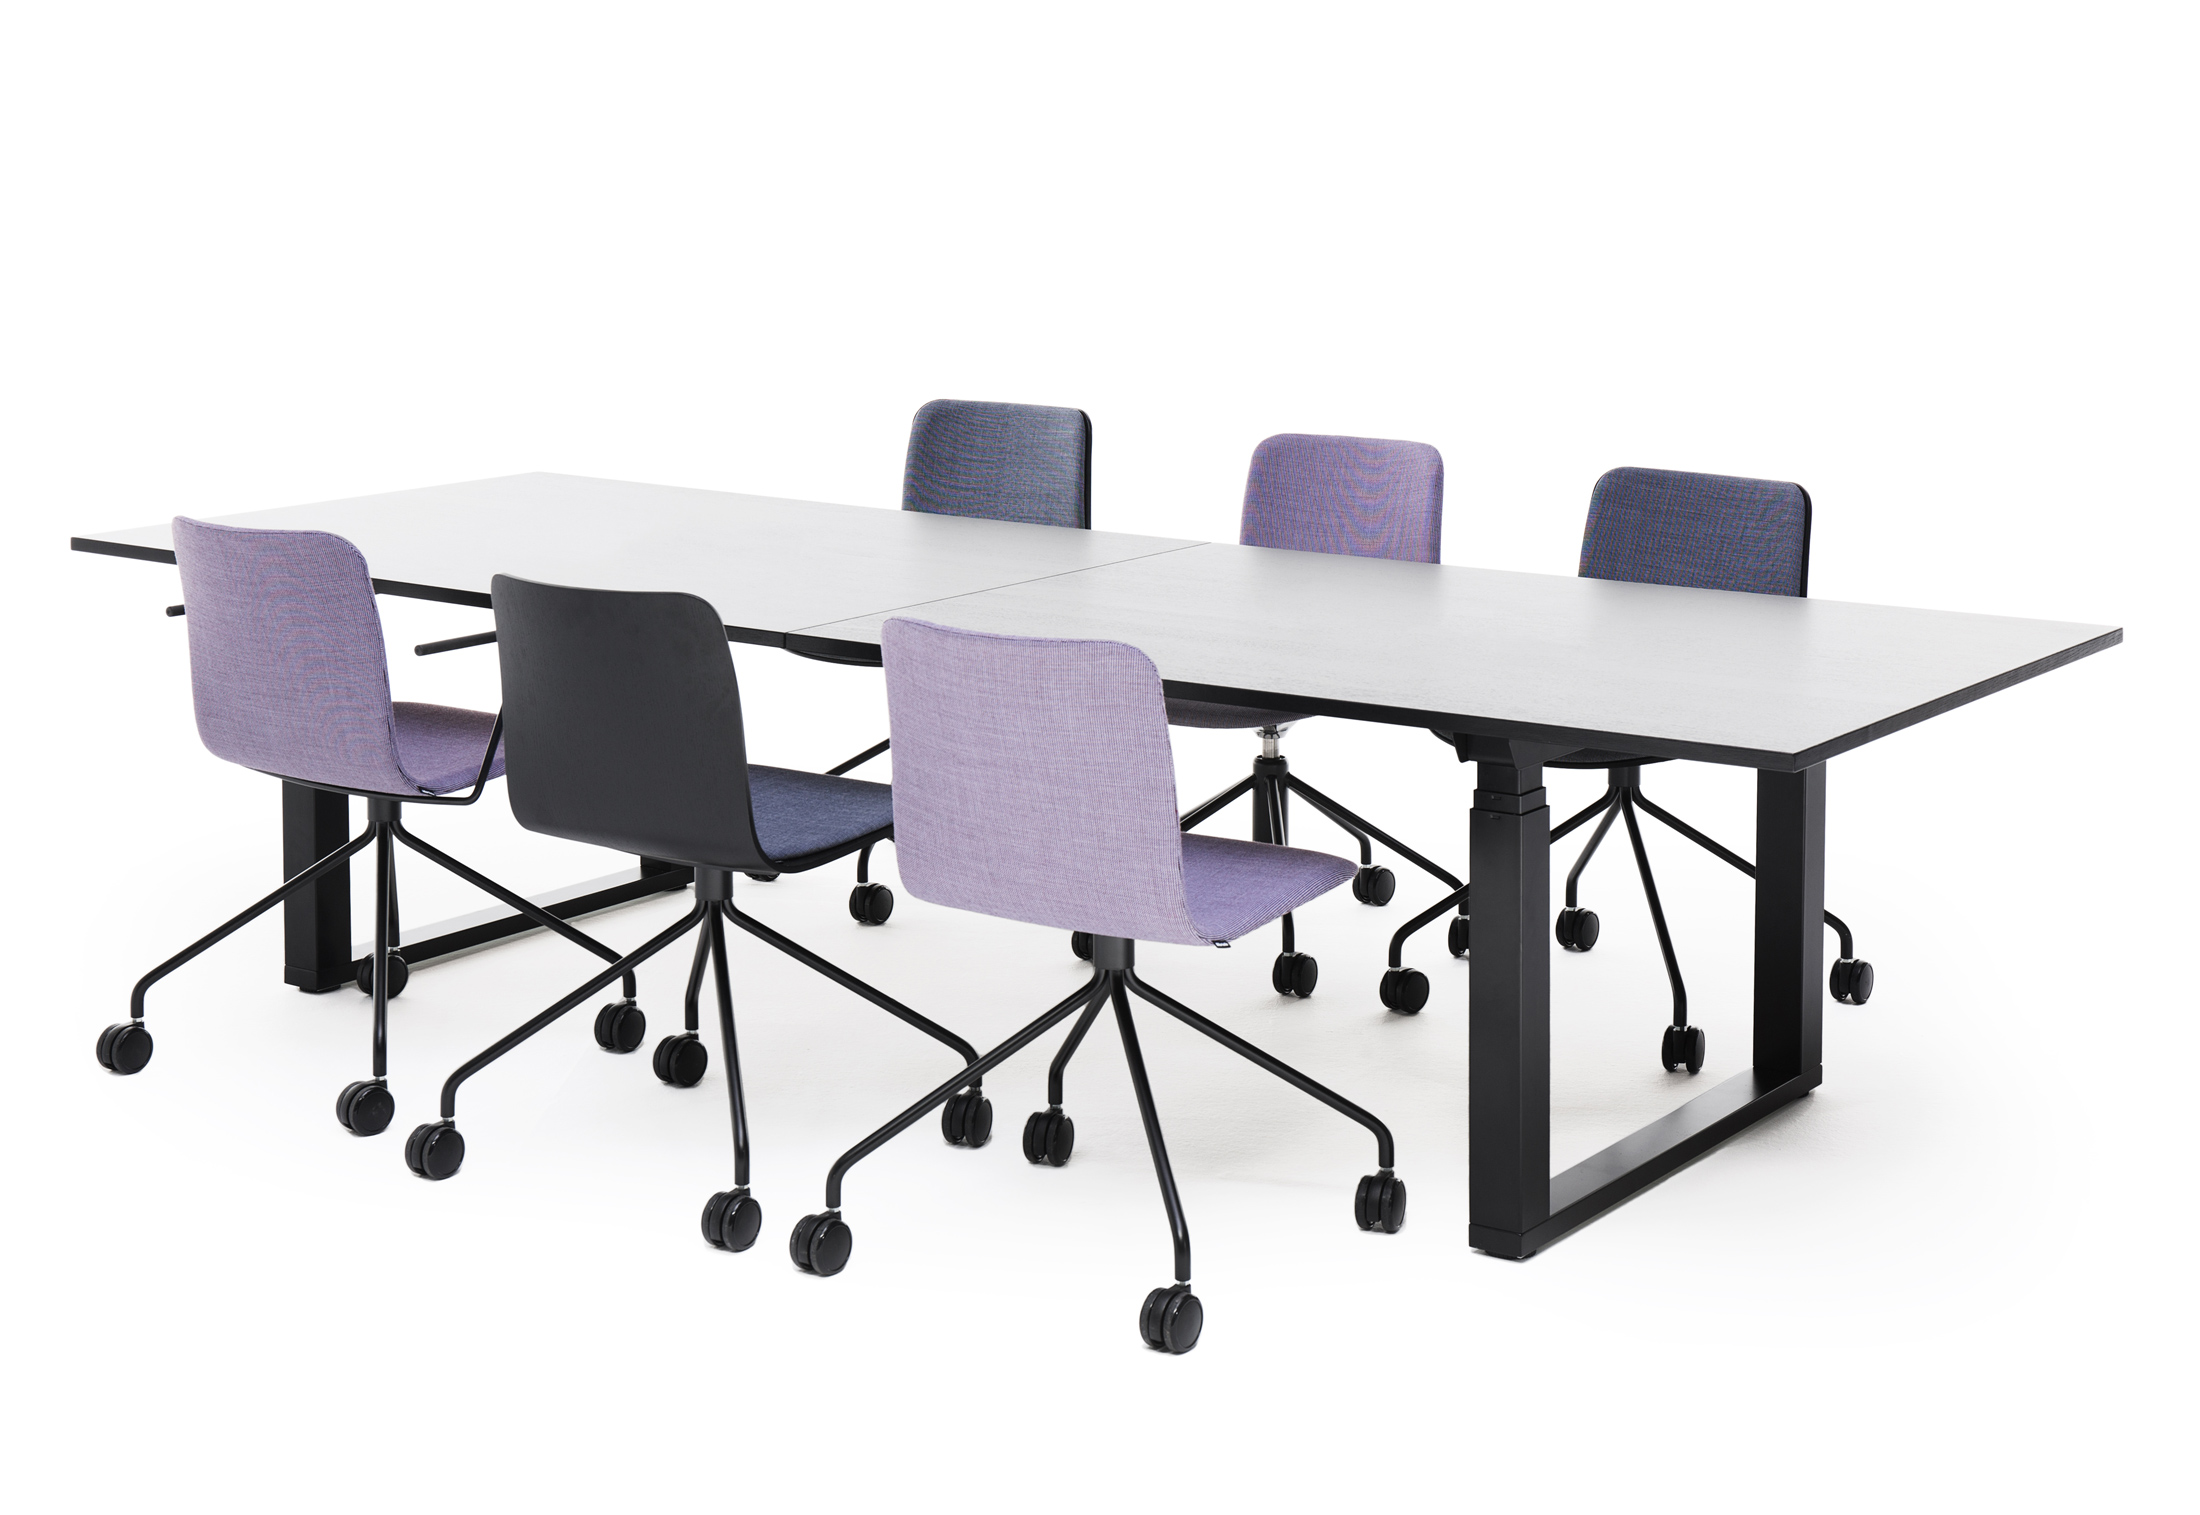 Frankie Height Adjustable Conference Table By Martela STYLEPARK - Height adjustable meeting table